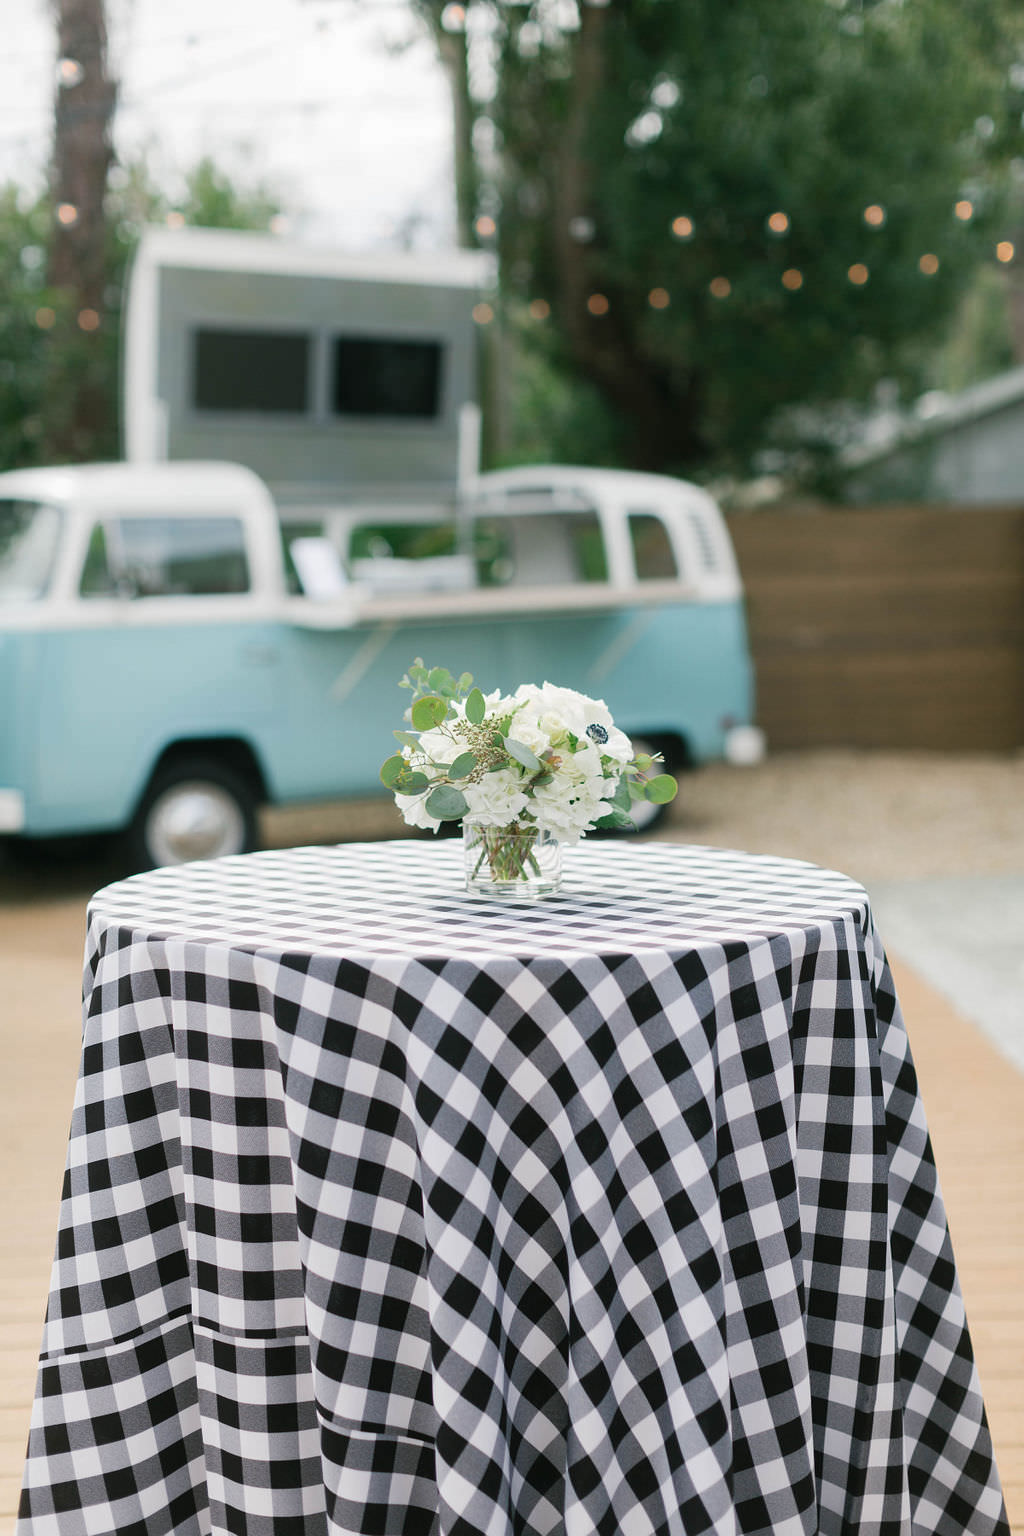 Magnolia Market Southern Inspired Tampa Bridal Shower | Joanna Gaines Inspired Bridal Shower | Buffalo Plaid Table Linens Over the Top Rental Linens | Tastes of Tampa Bay Food Truck